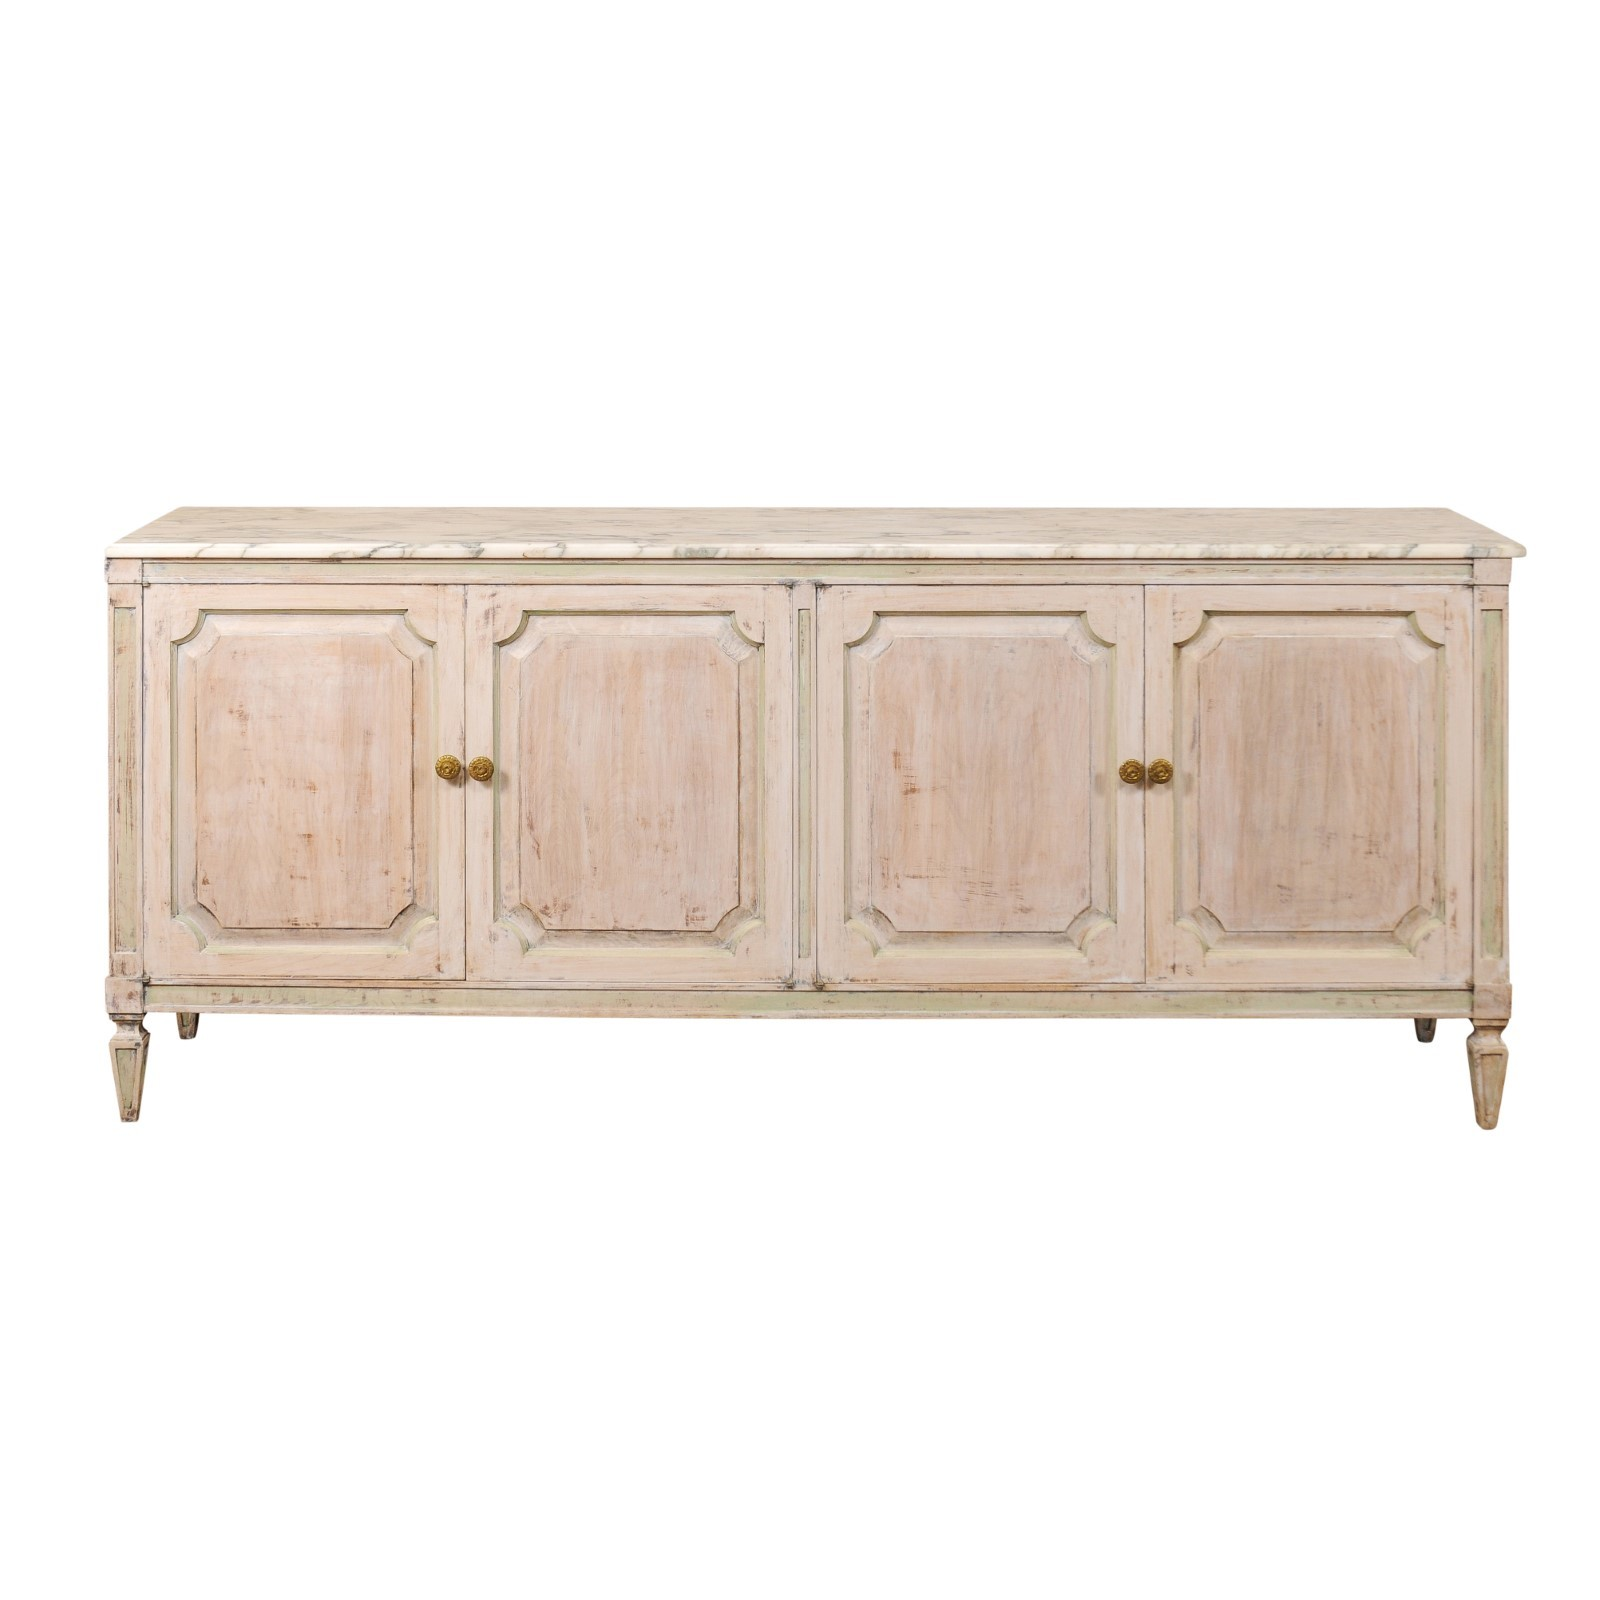 7 ft. Buffet w/Marble Top & Cool Tones